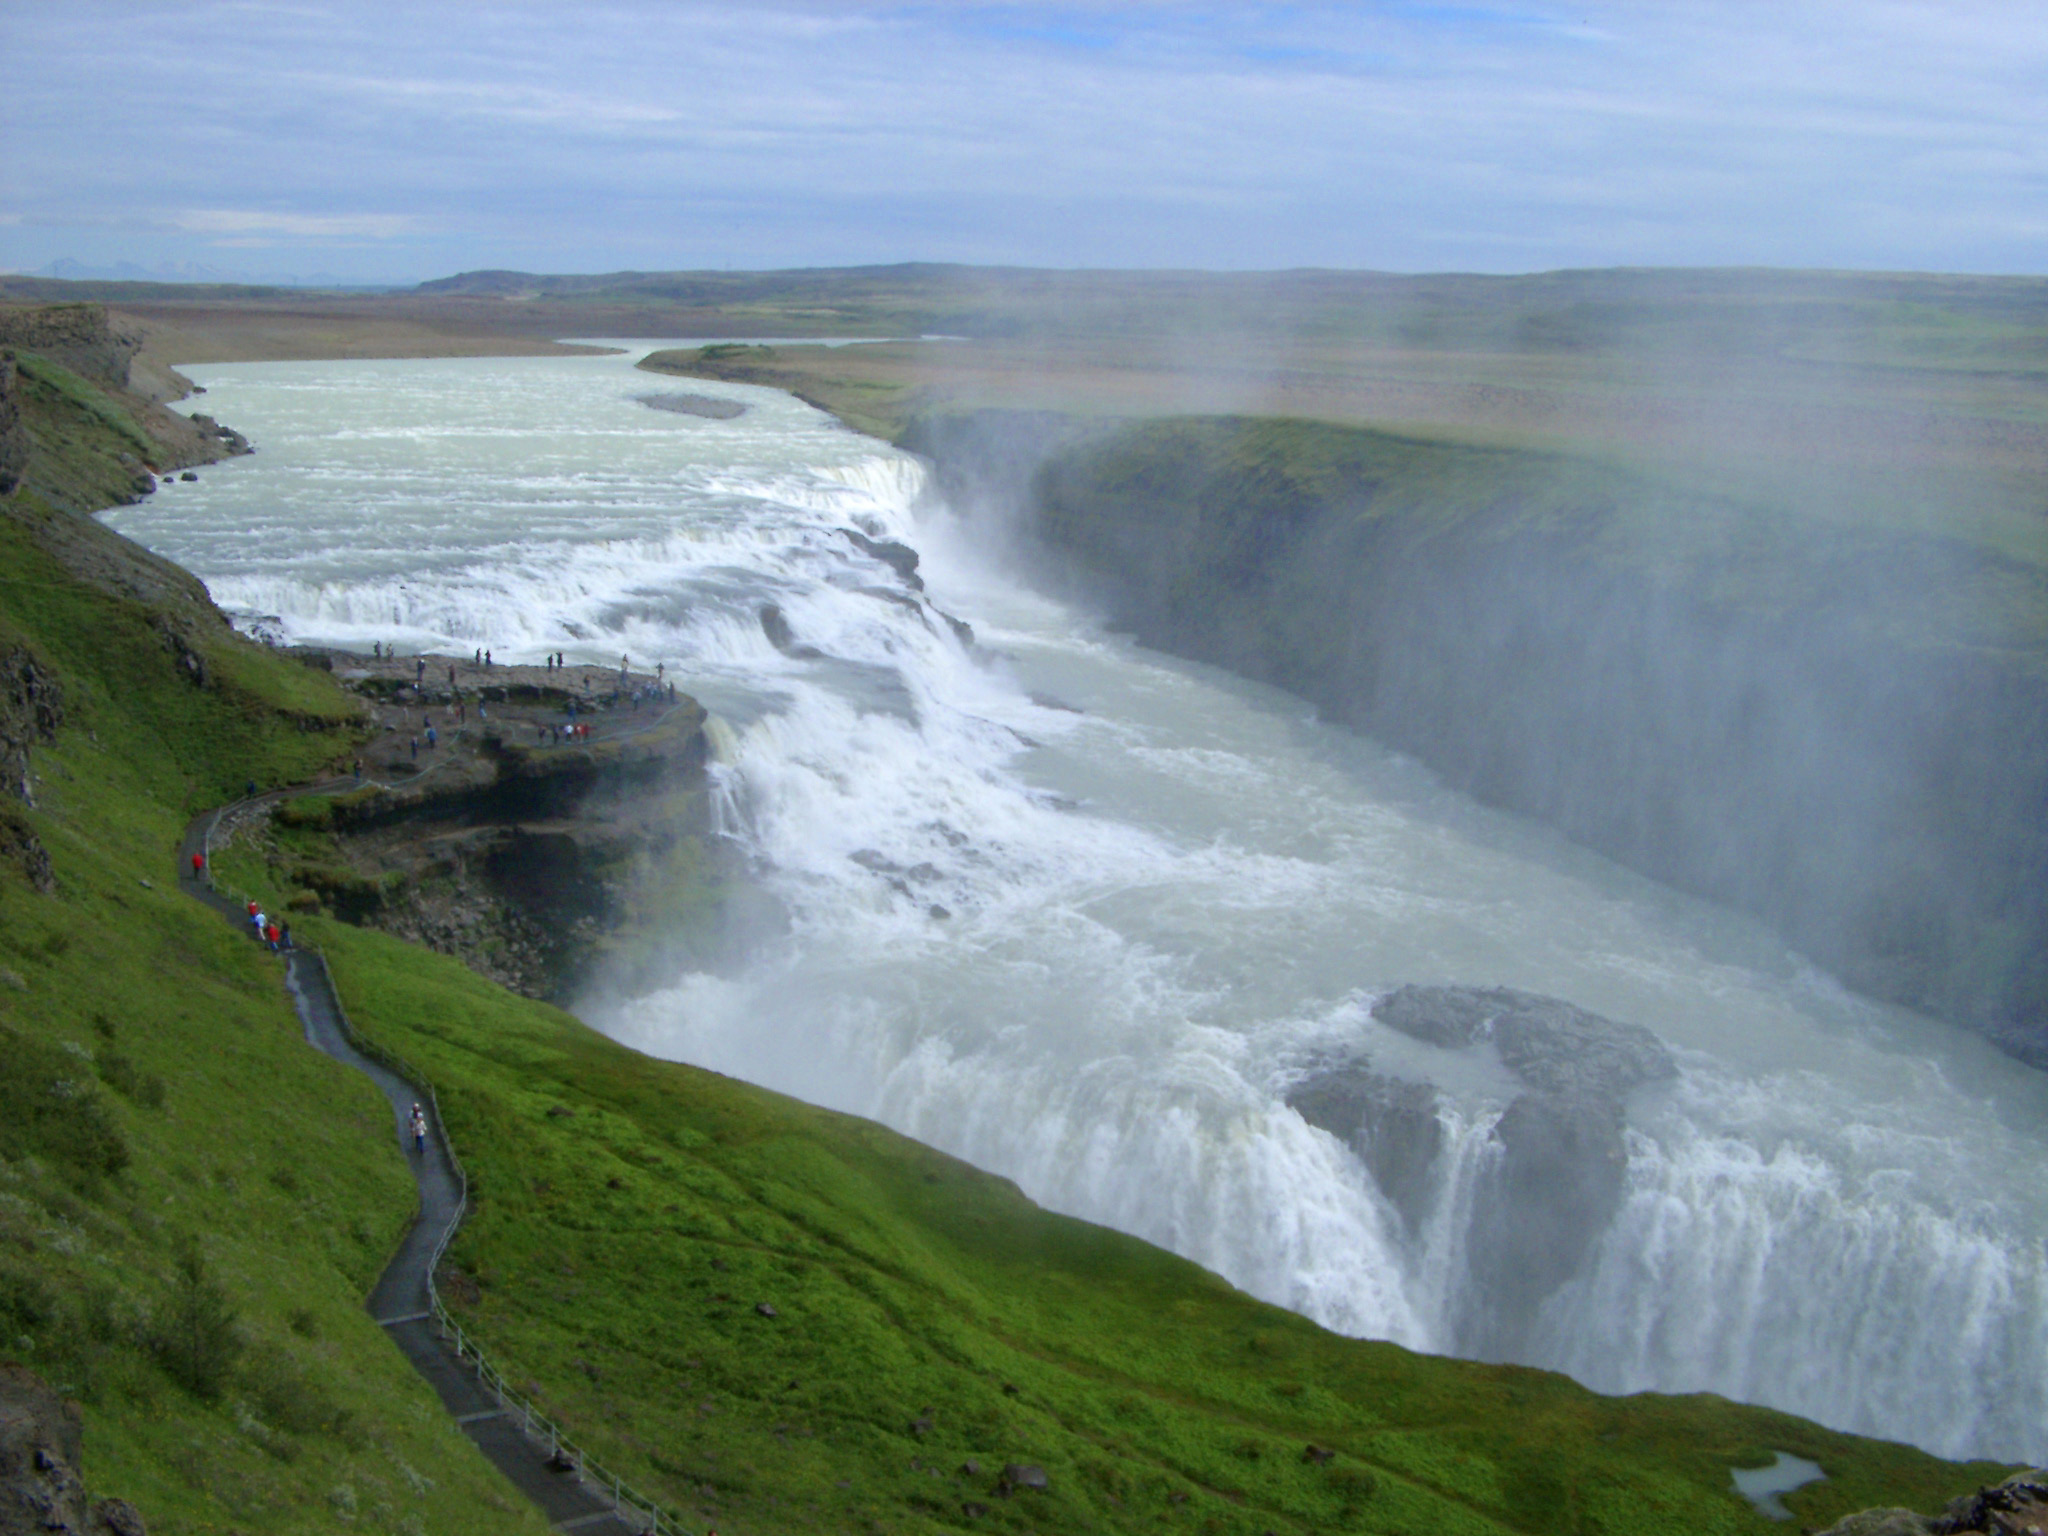 Scenic landscape view of the powerful flow of water and mist at Gullfoss waterfall, Iceland, in the Hvita River, which is a popular tourist attraction